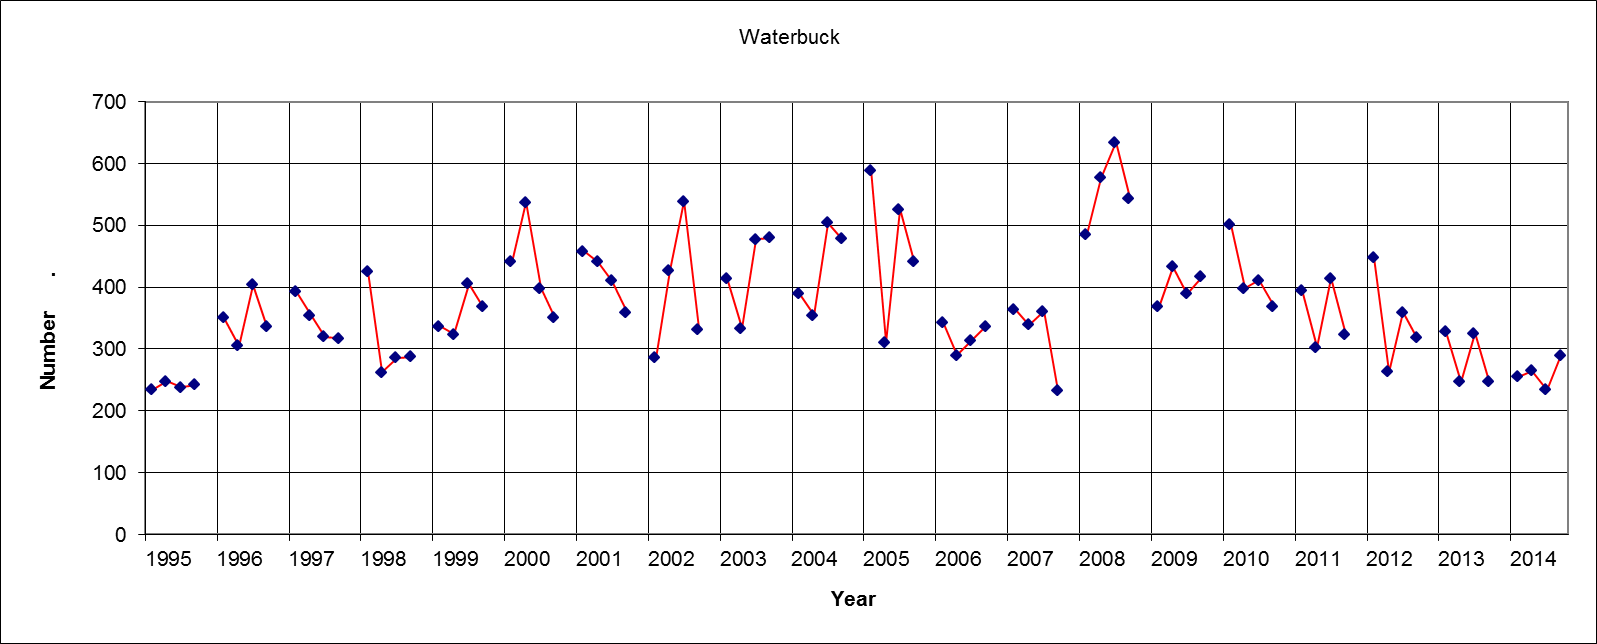 Waterbuck Results (Four figures each year = Sat am, Sat pm, Sun am, Sun pm